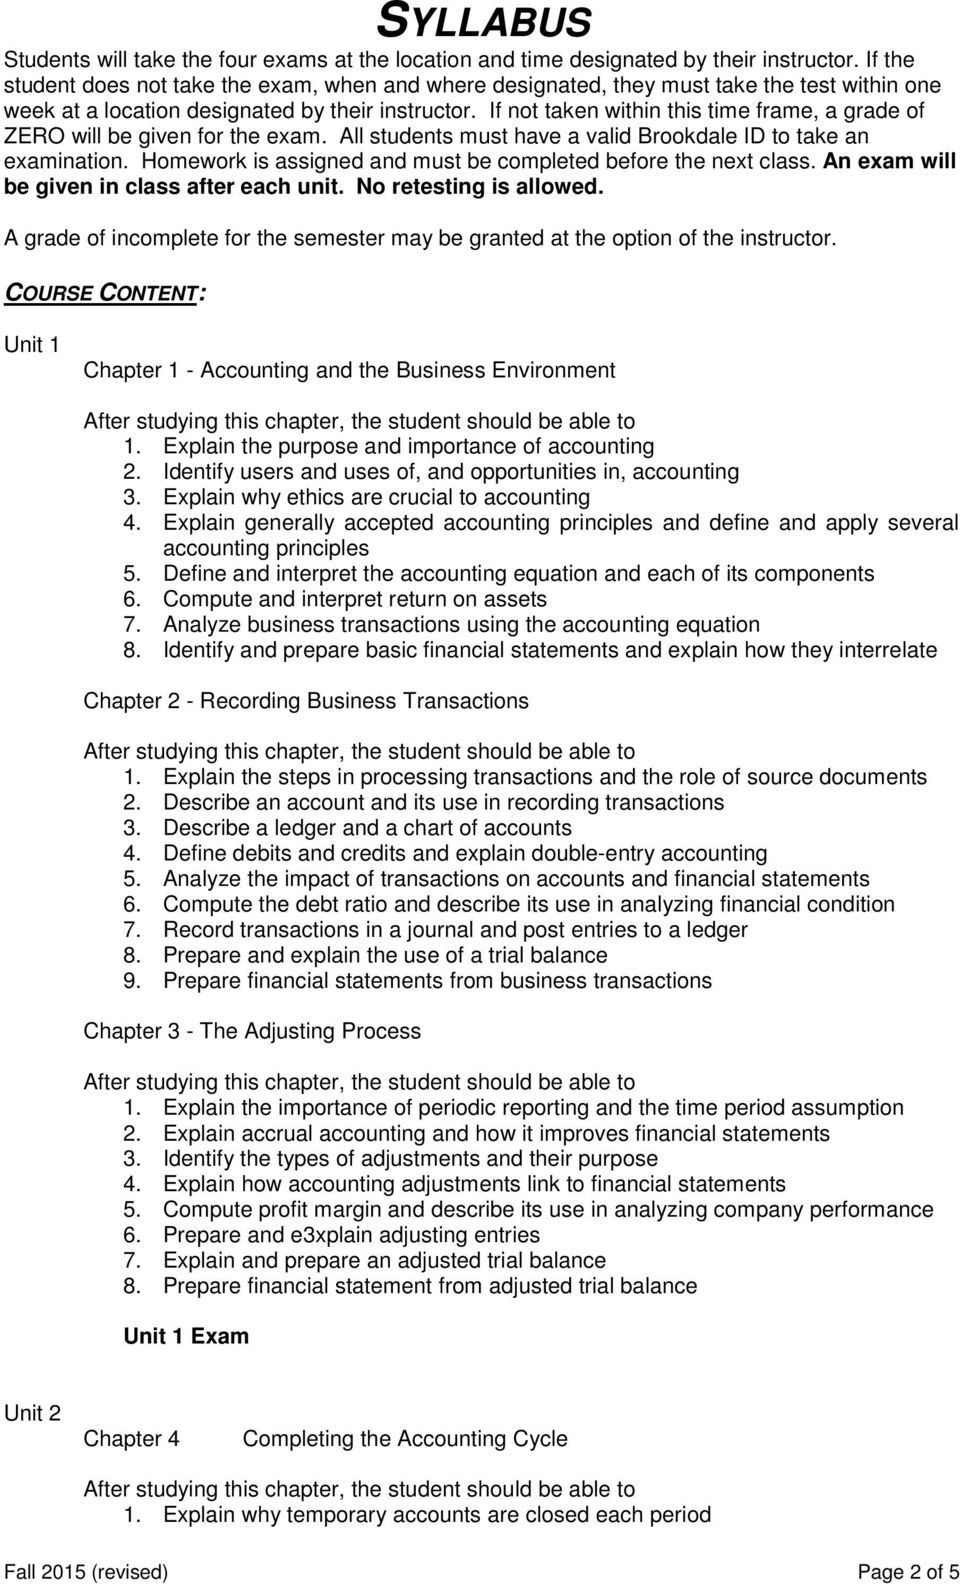 SYLLABUS  Title: Principles of Accounting I - PDF